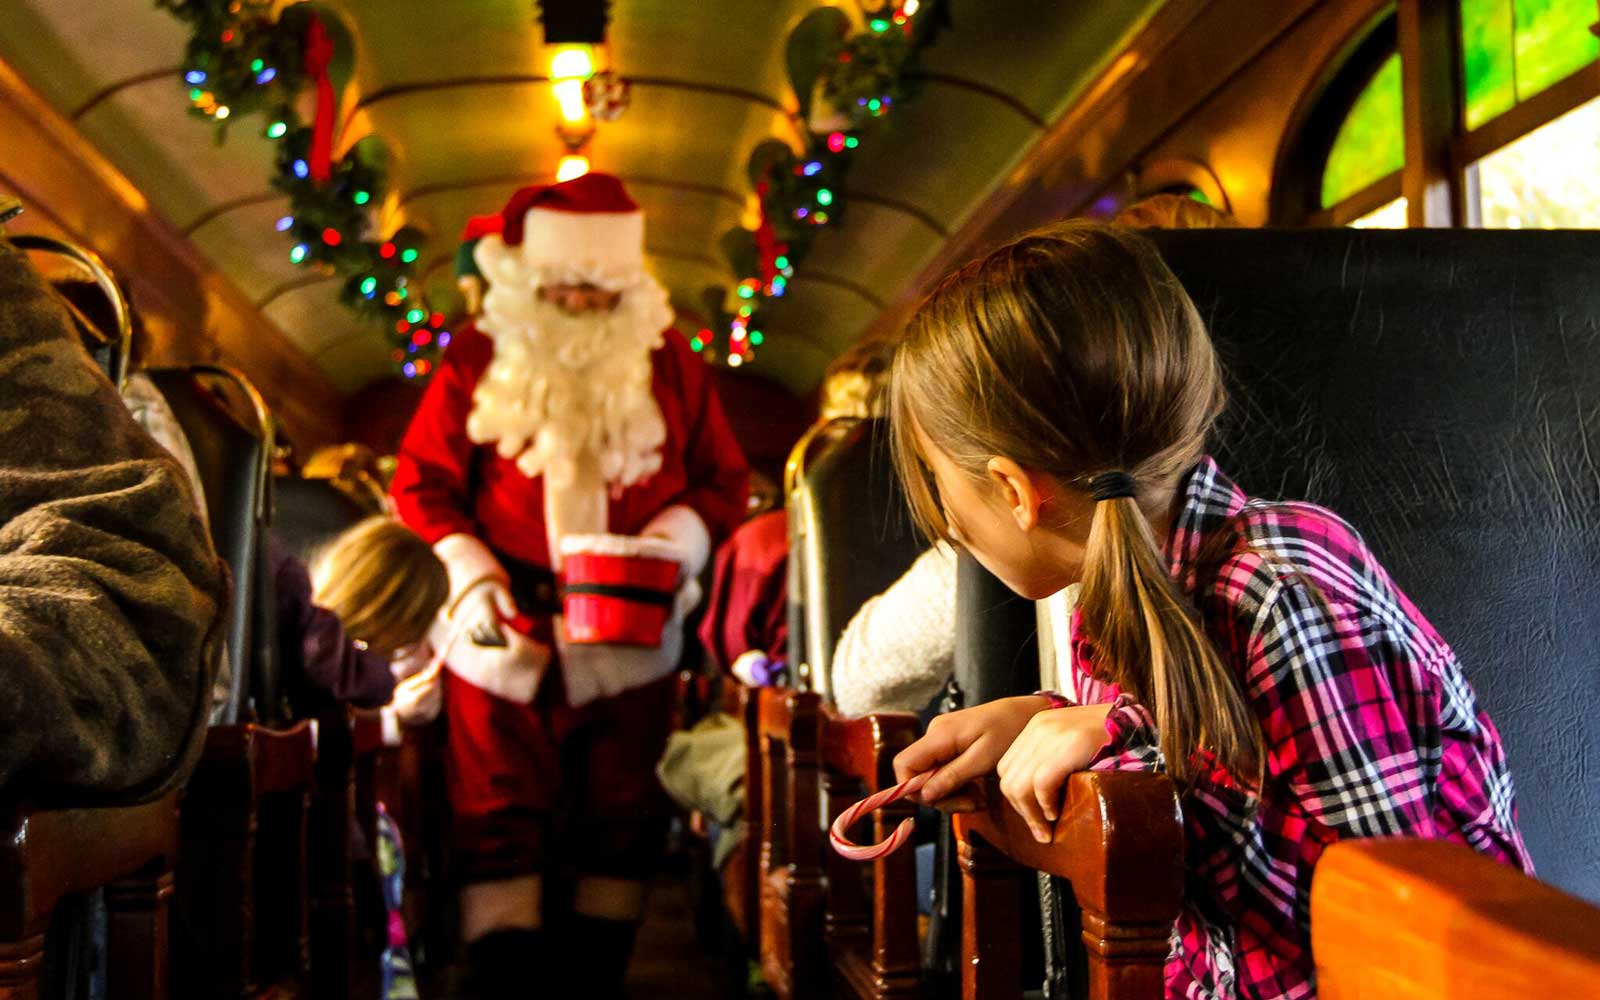 The Holiday Express 1880 Train: South Dakota